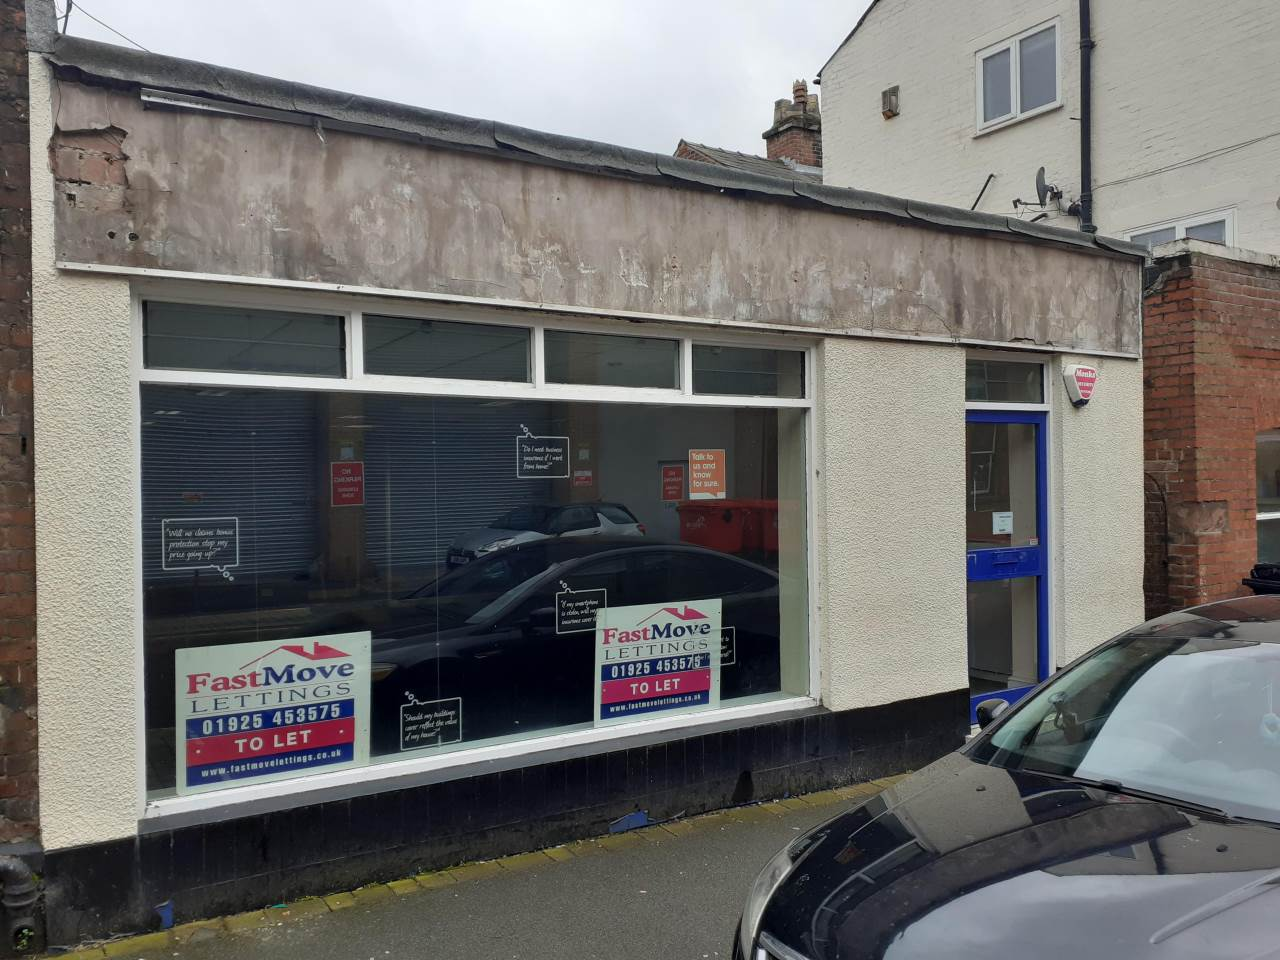 0 bed Business Transfer for rent in Warrington. From Fastmove Properties (Warrington)